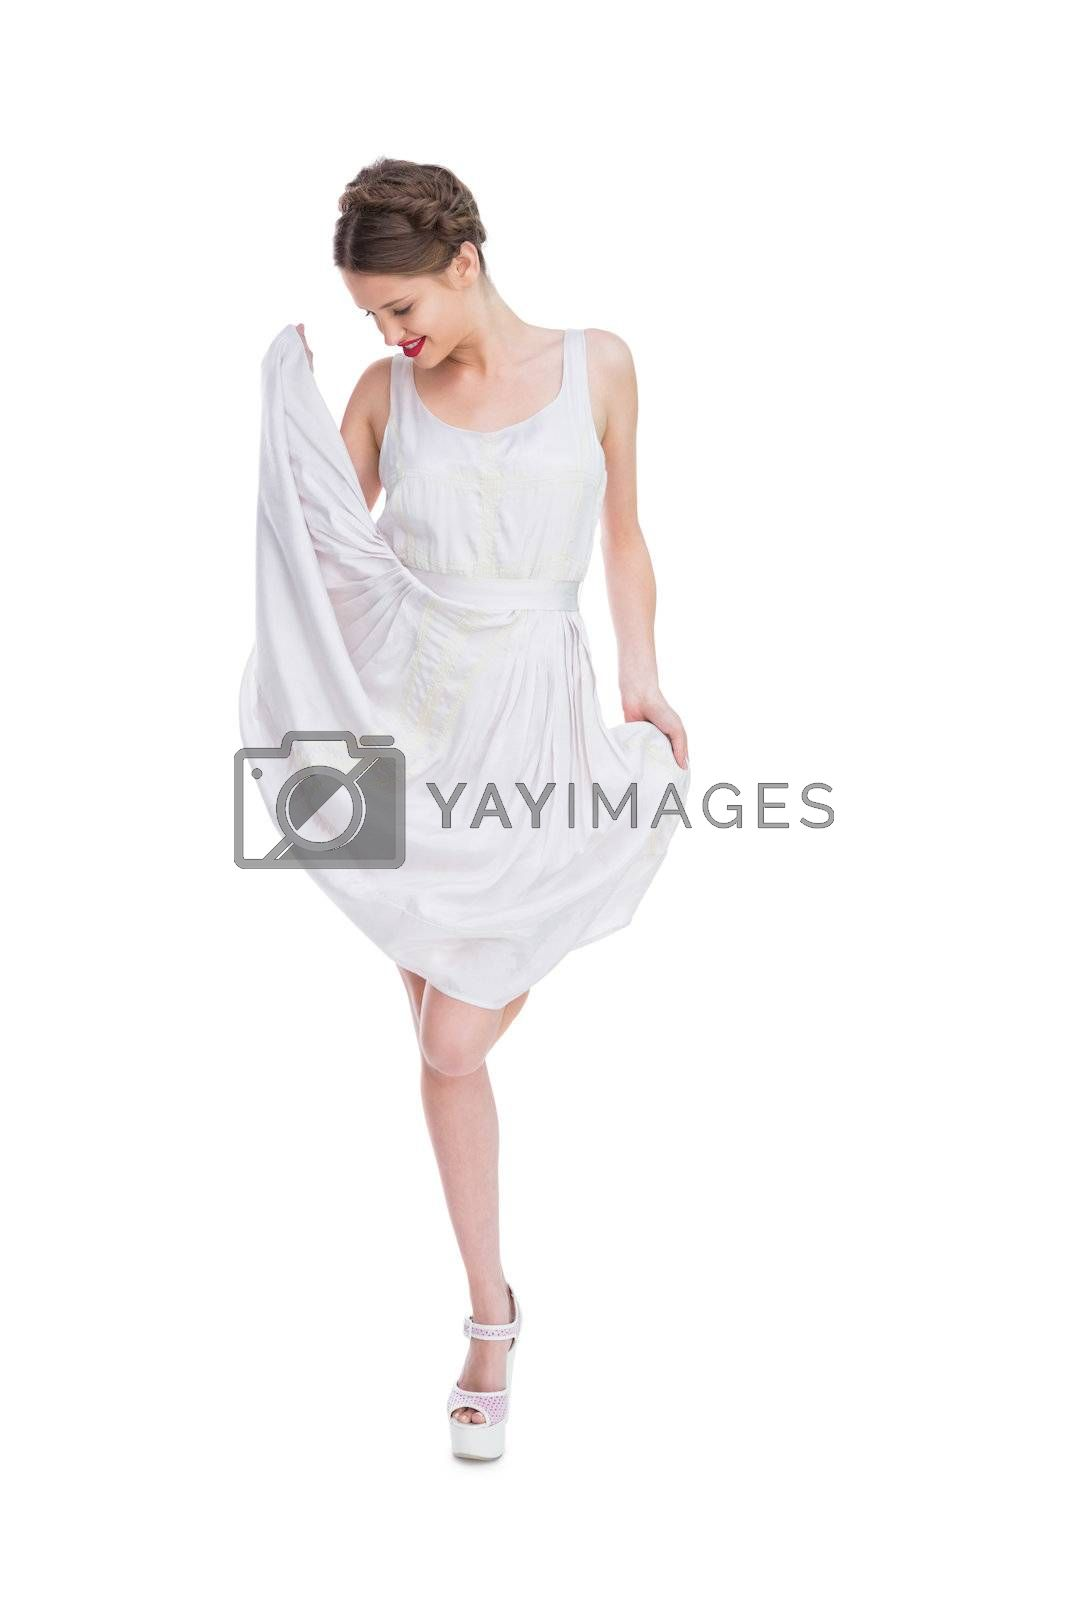 Smiling woman playing with her white summer dress by Wavebreakmedia